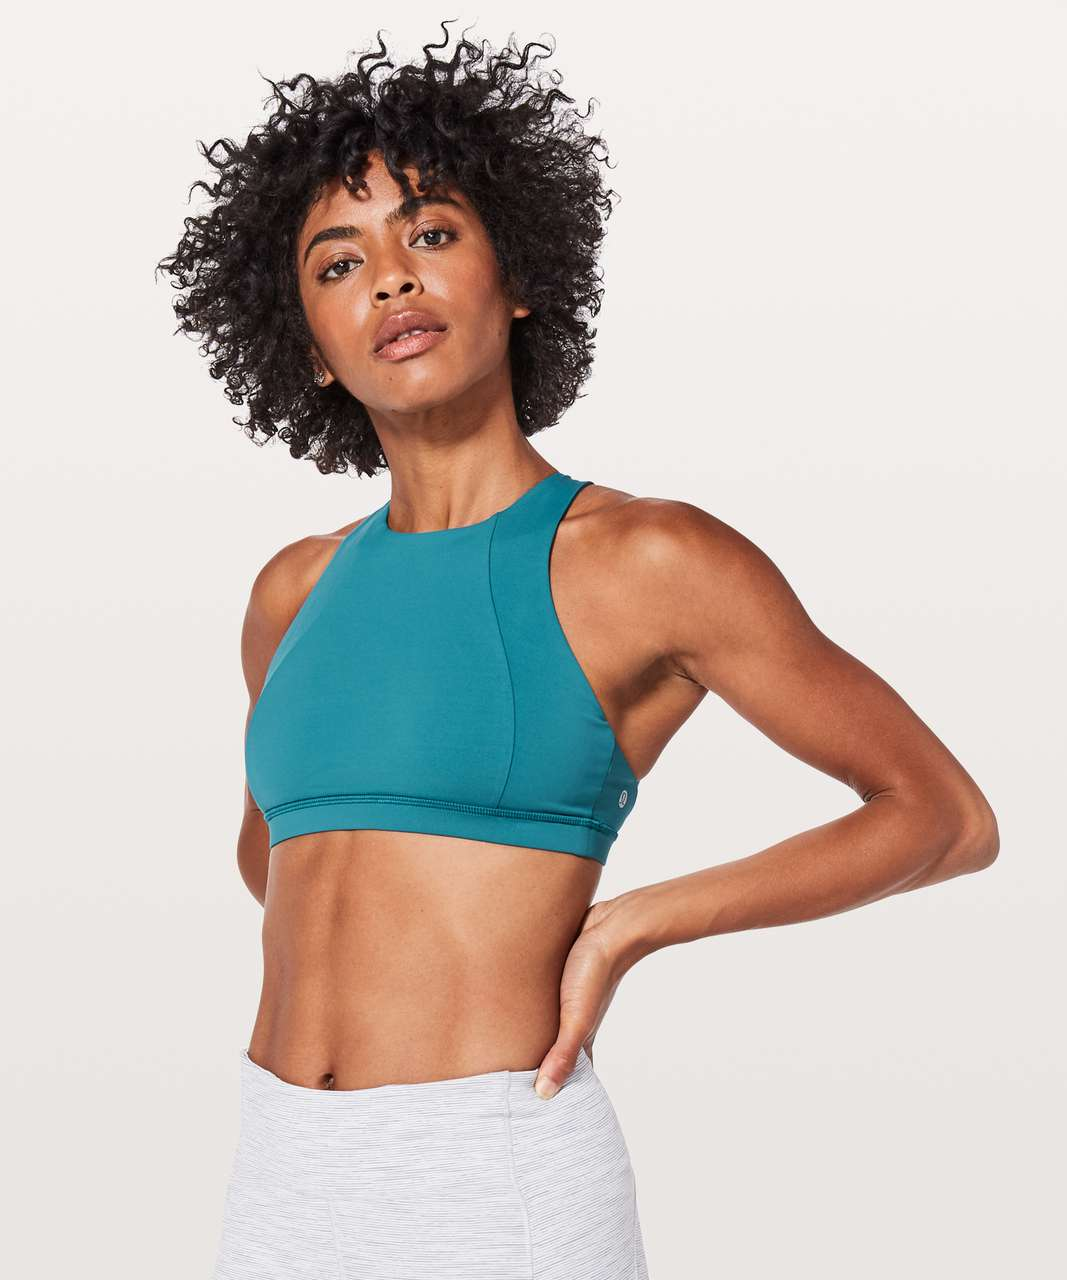 d275a1bc6 Lululemon Free To Be Serene Bra *High Neck - Pacific Teal / Teal Blue -  lulu fanatics